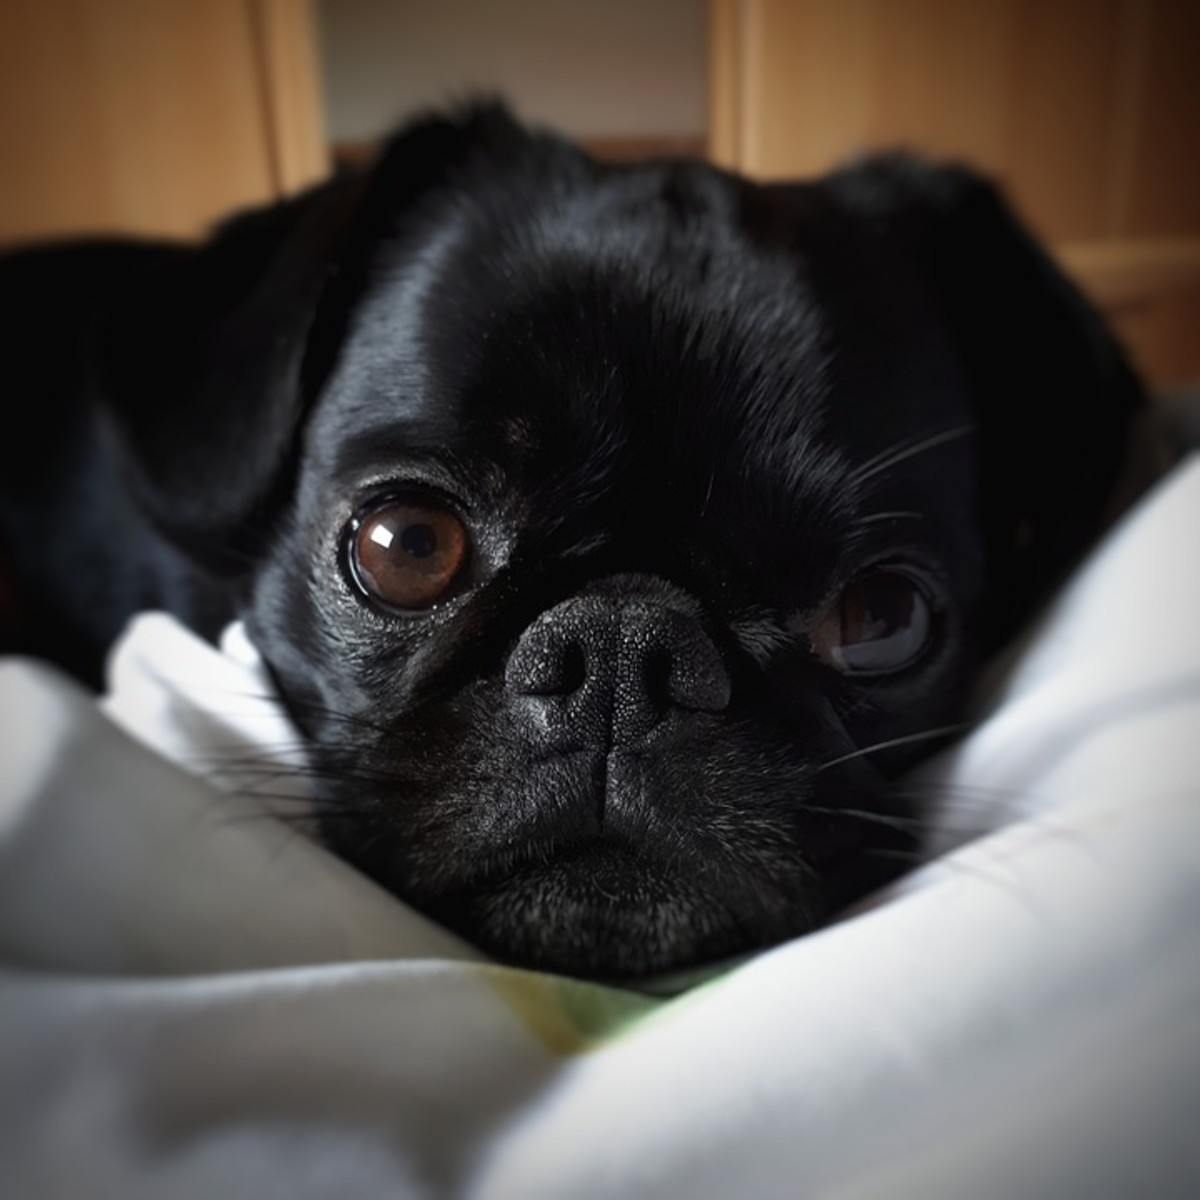 With a face like that, it's no wonder pugs became so loved throughout the world!